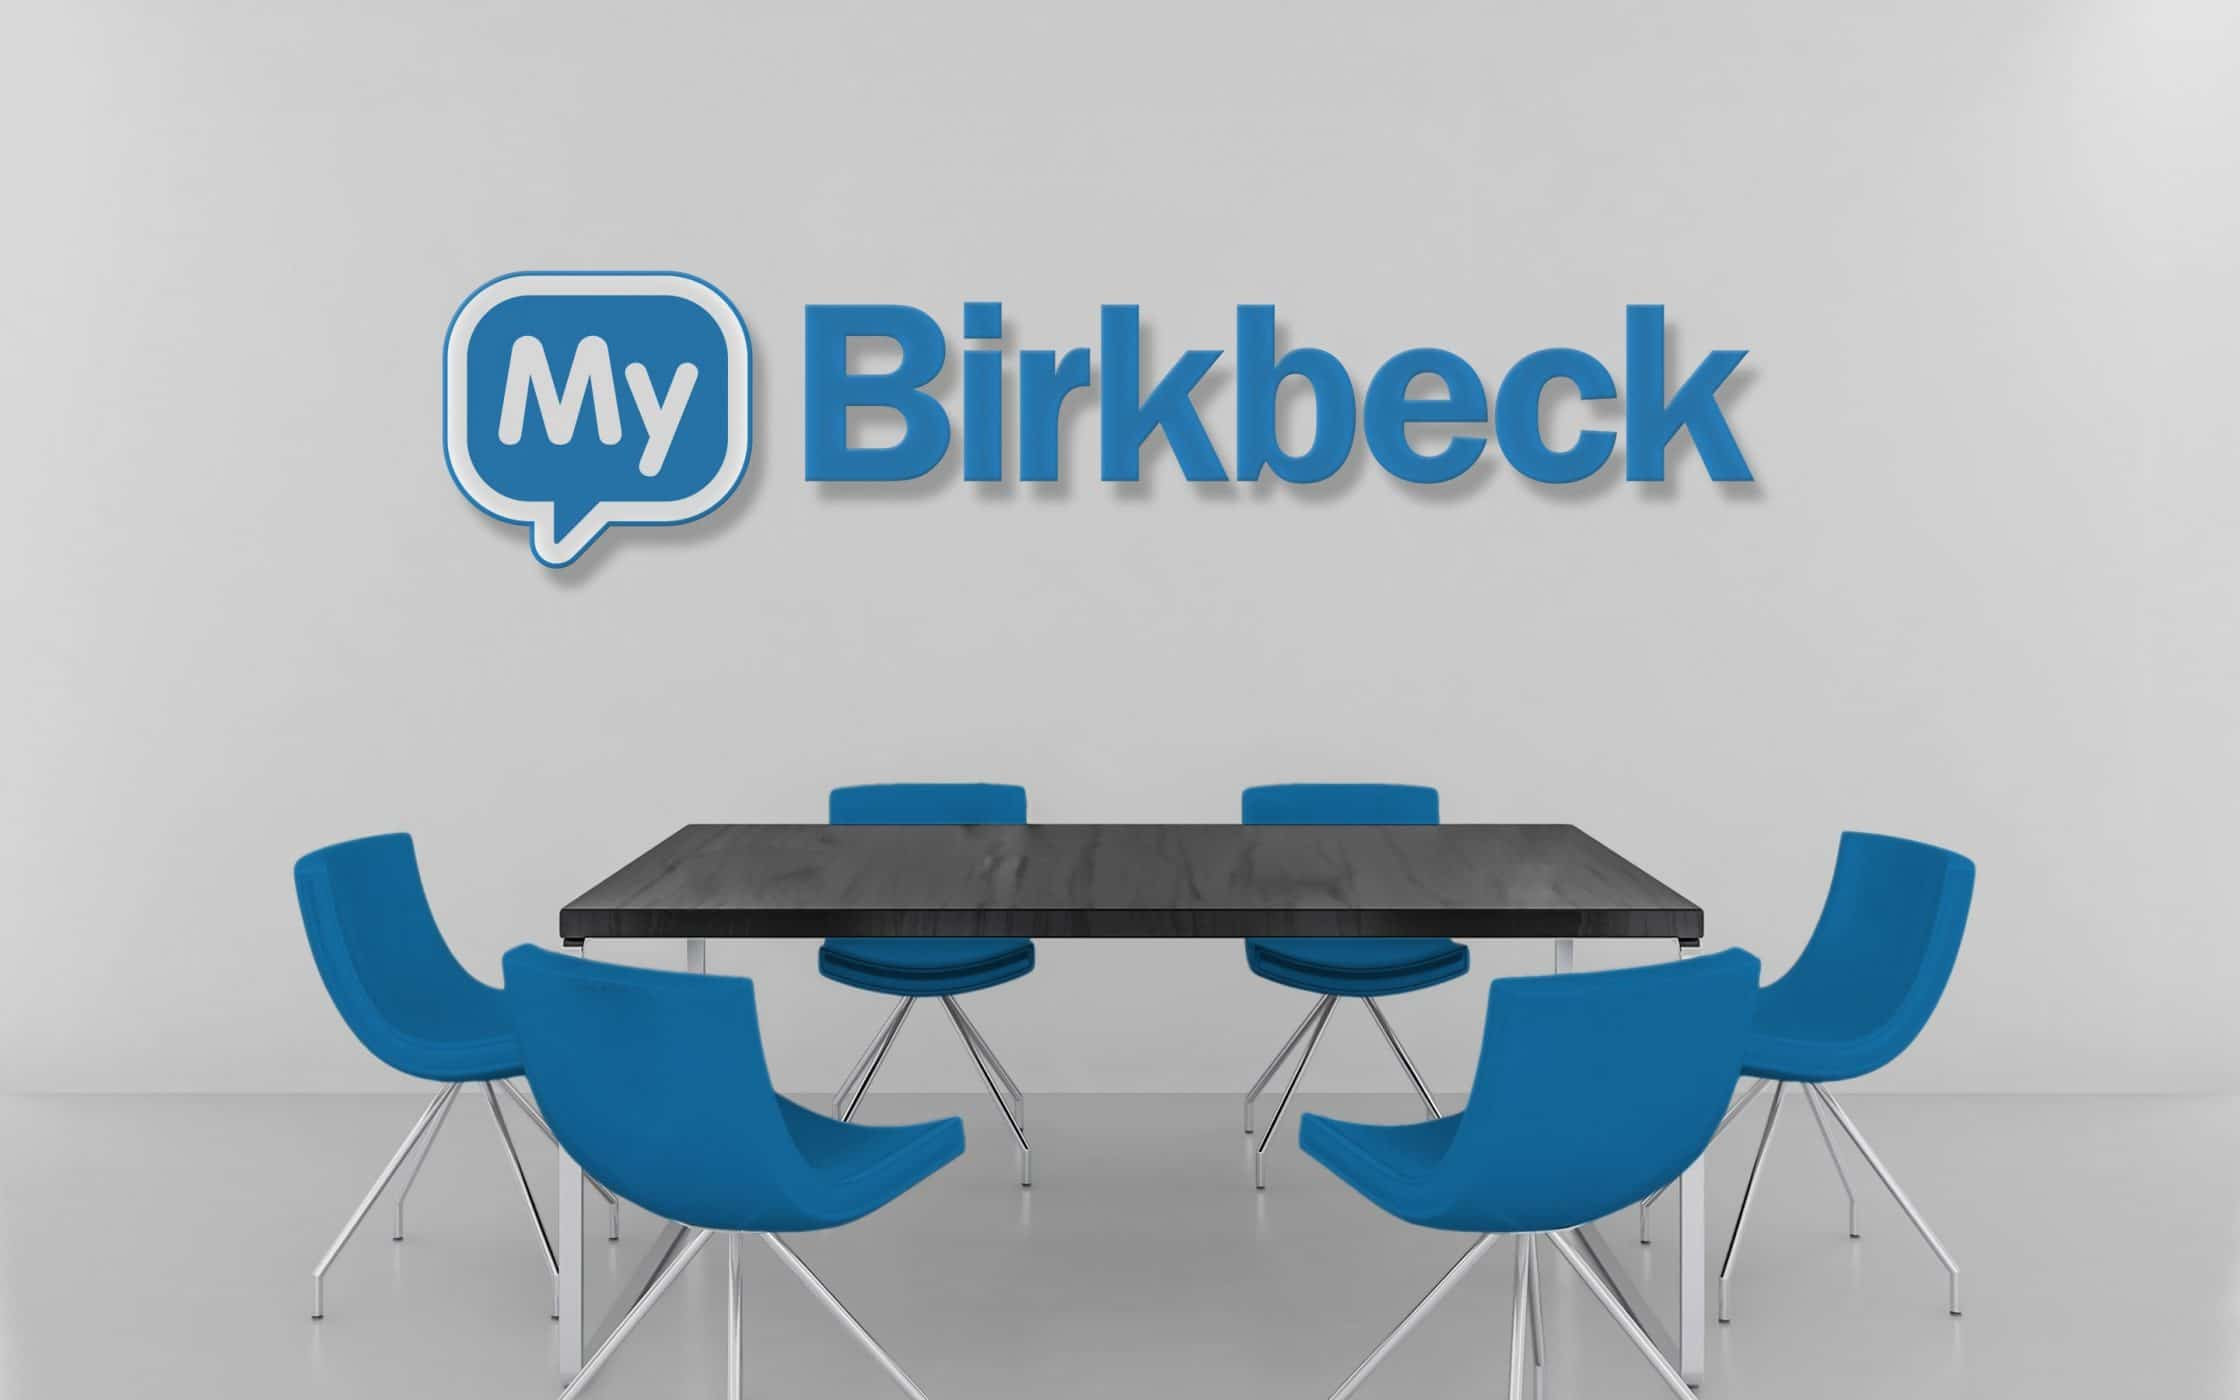 My Birkbeck logo on a wall behind table and chairs.